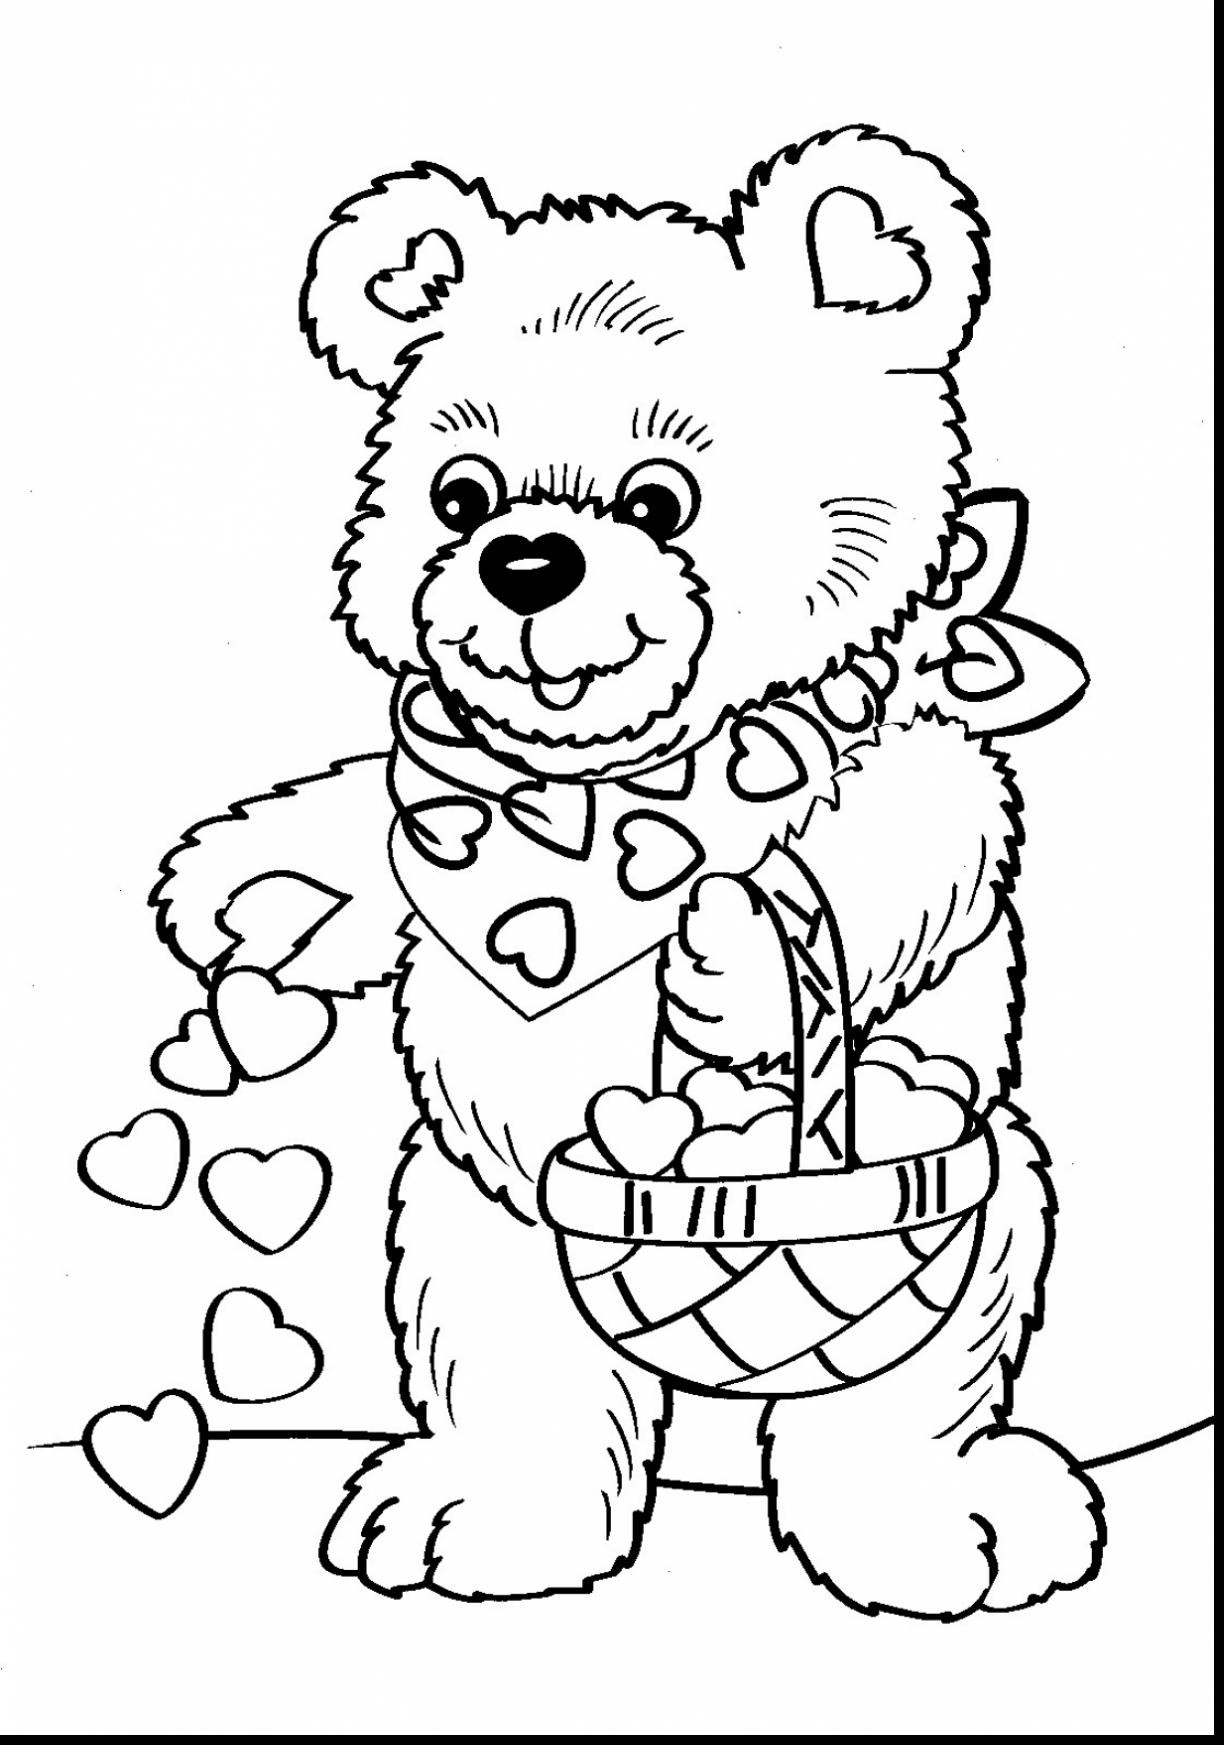 image about Valentine Day Coloring Pages Printable named Valentines Working day Coloring Internet pages Printable Hi there Kitty